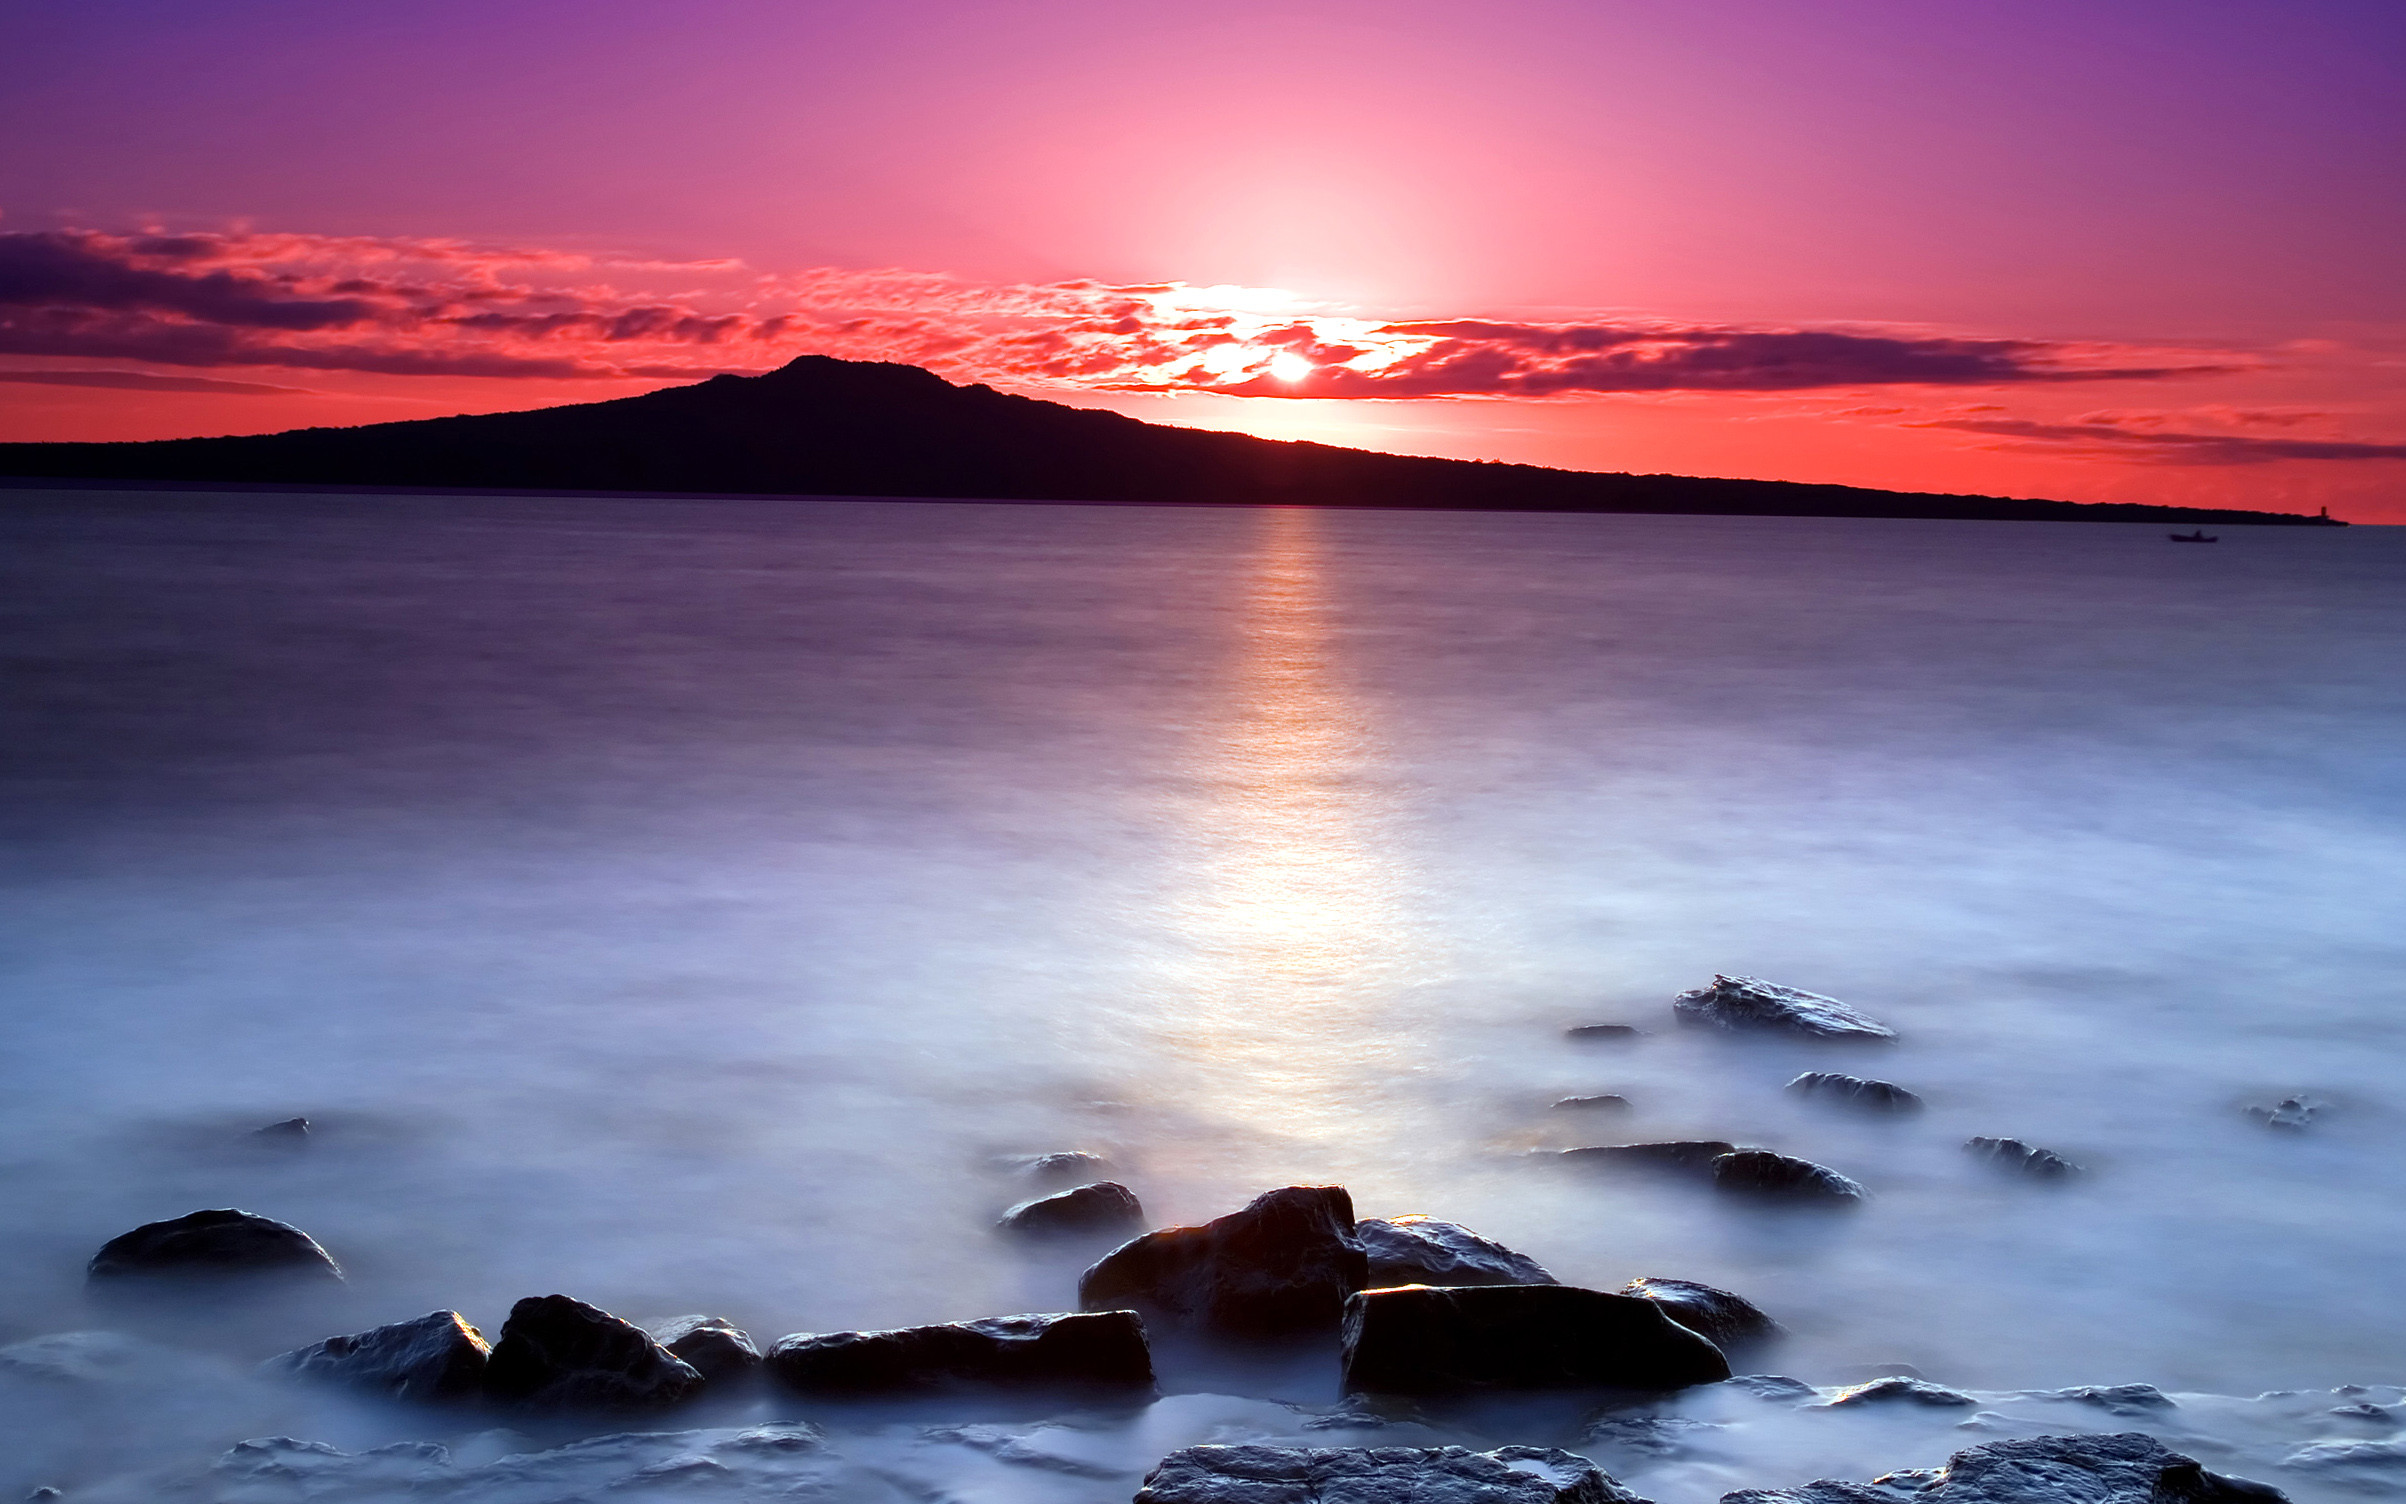 Pink, Morning, Cool Nature Wallpapers, Amazing Landscape, Plants,  Widescreen Nature Images